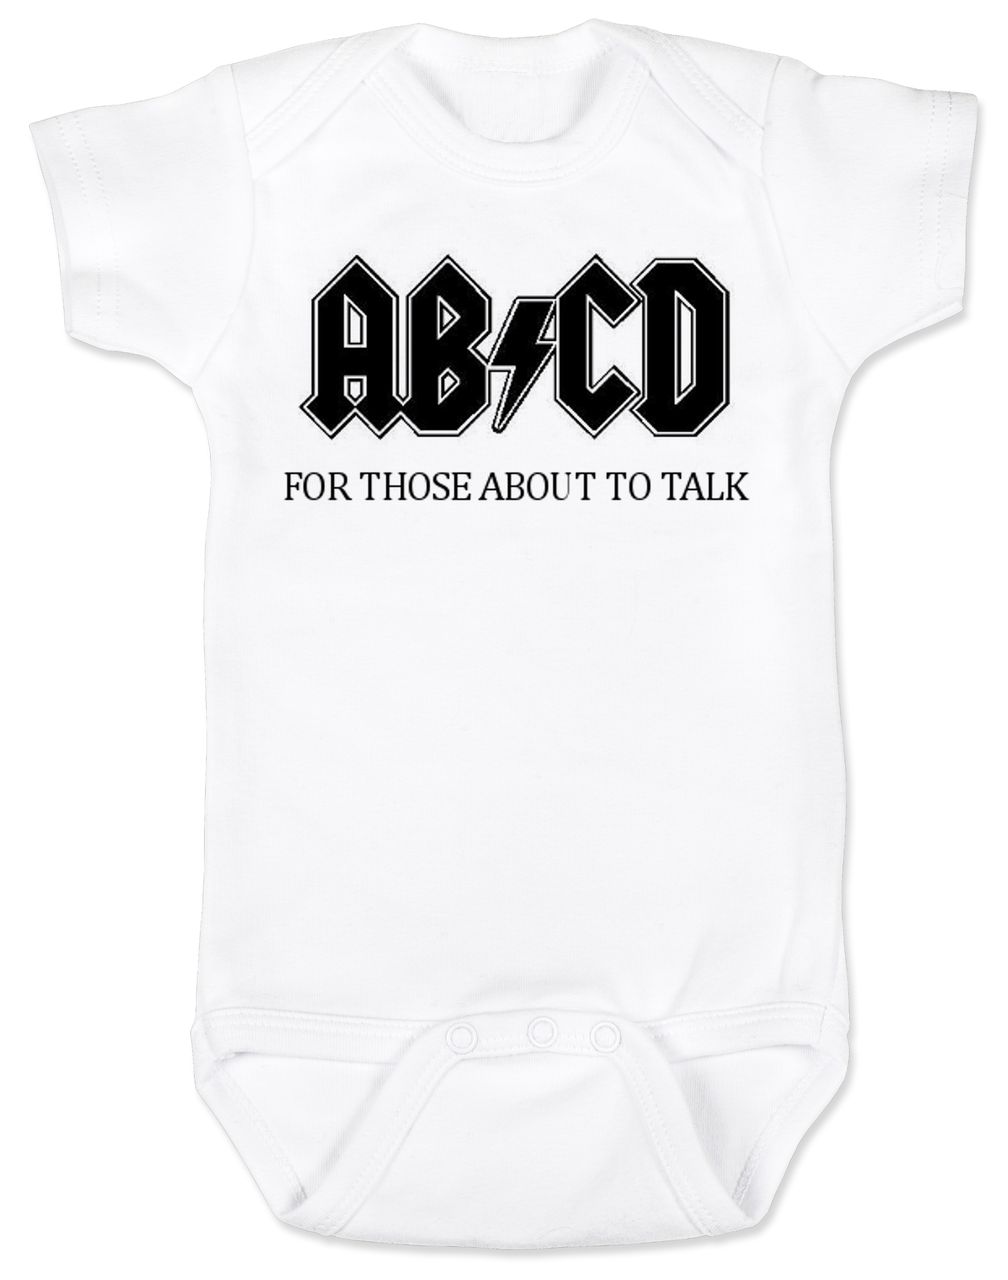 For those about to Crawl Baby Romper Customized Baby Onesie Baby Bodysuit ABCD